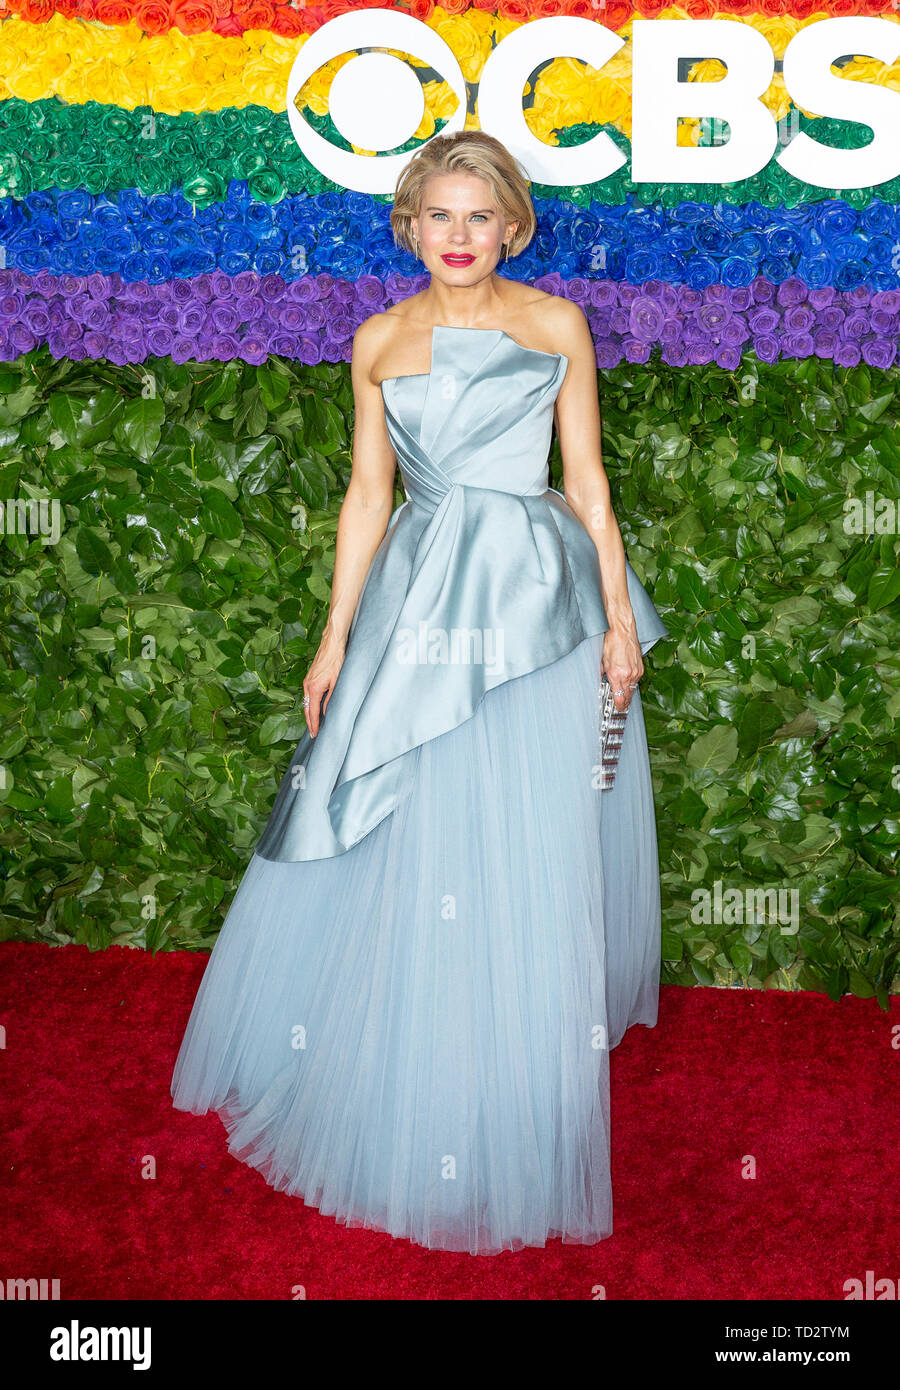 New York, United States. 09th June, 2019. Celia Keenan-Bolger attends the 73rd annual Tony Awards at Radio City Music Hall Credit: Lev Radin/Pacific Press/Alamy Live News - Stock Image